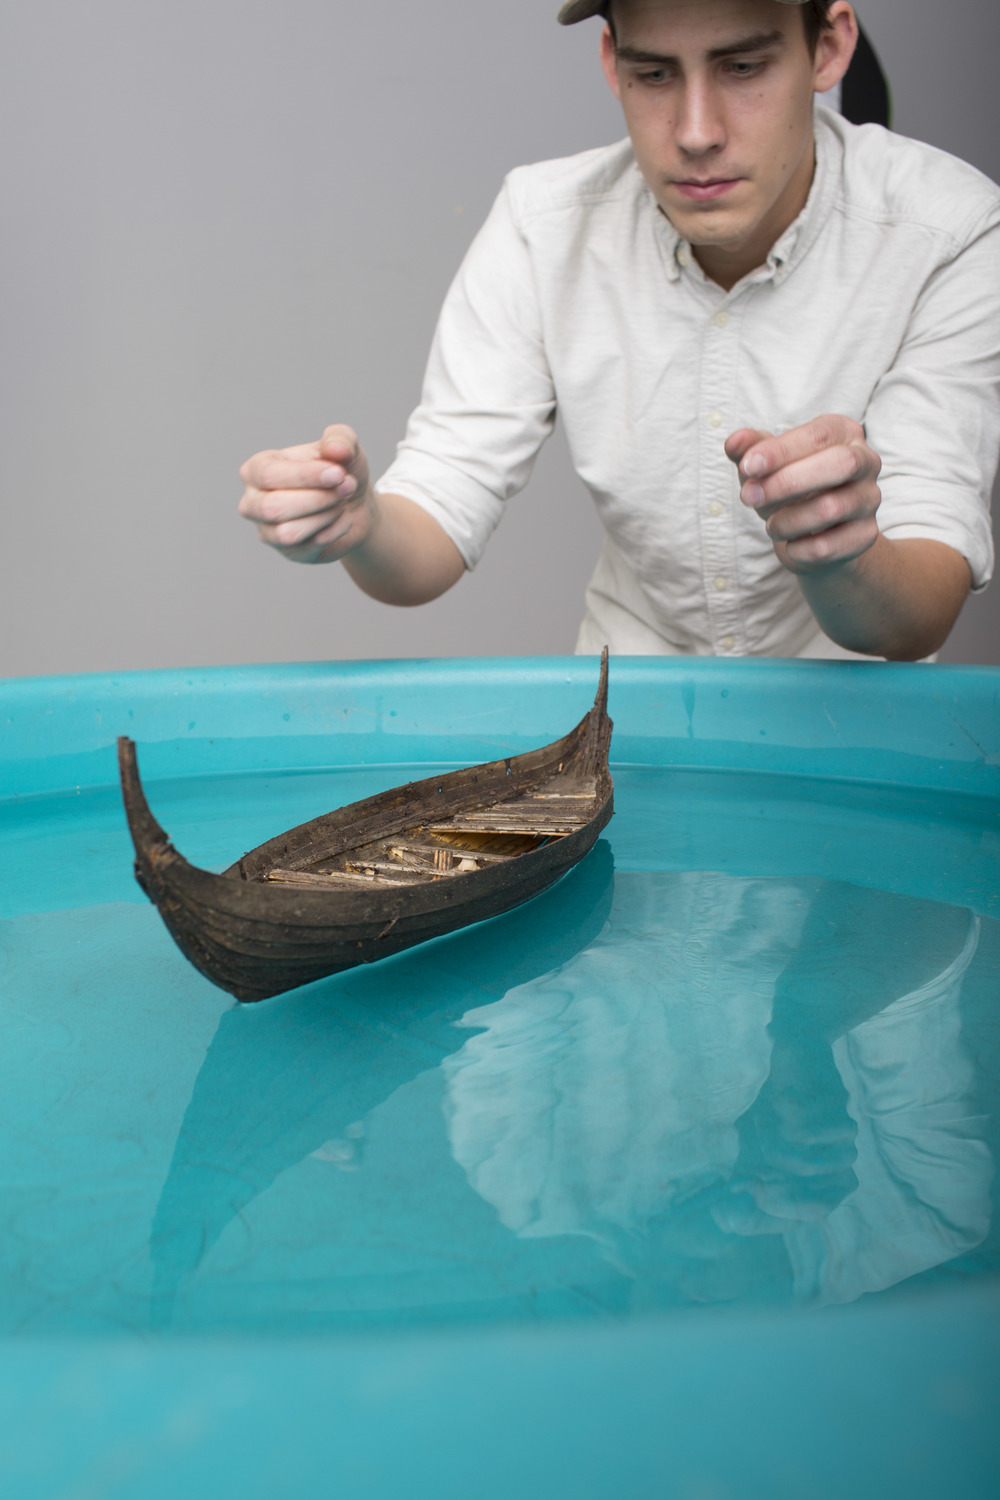 First we ordered a boat kit from England, assembled it, aged it, then photographed it in a baby pool in studio.